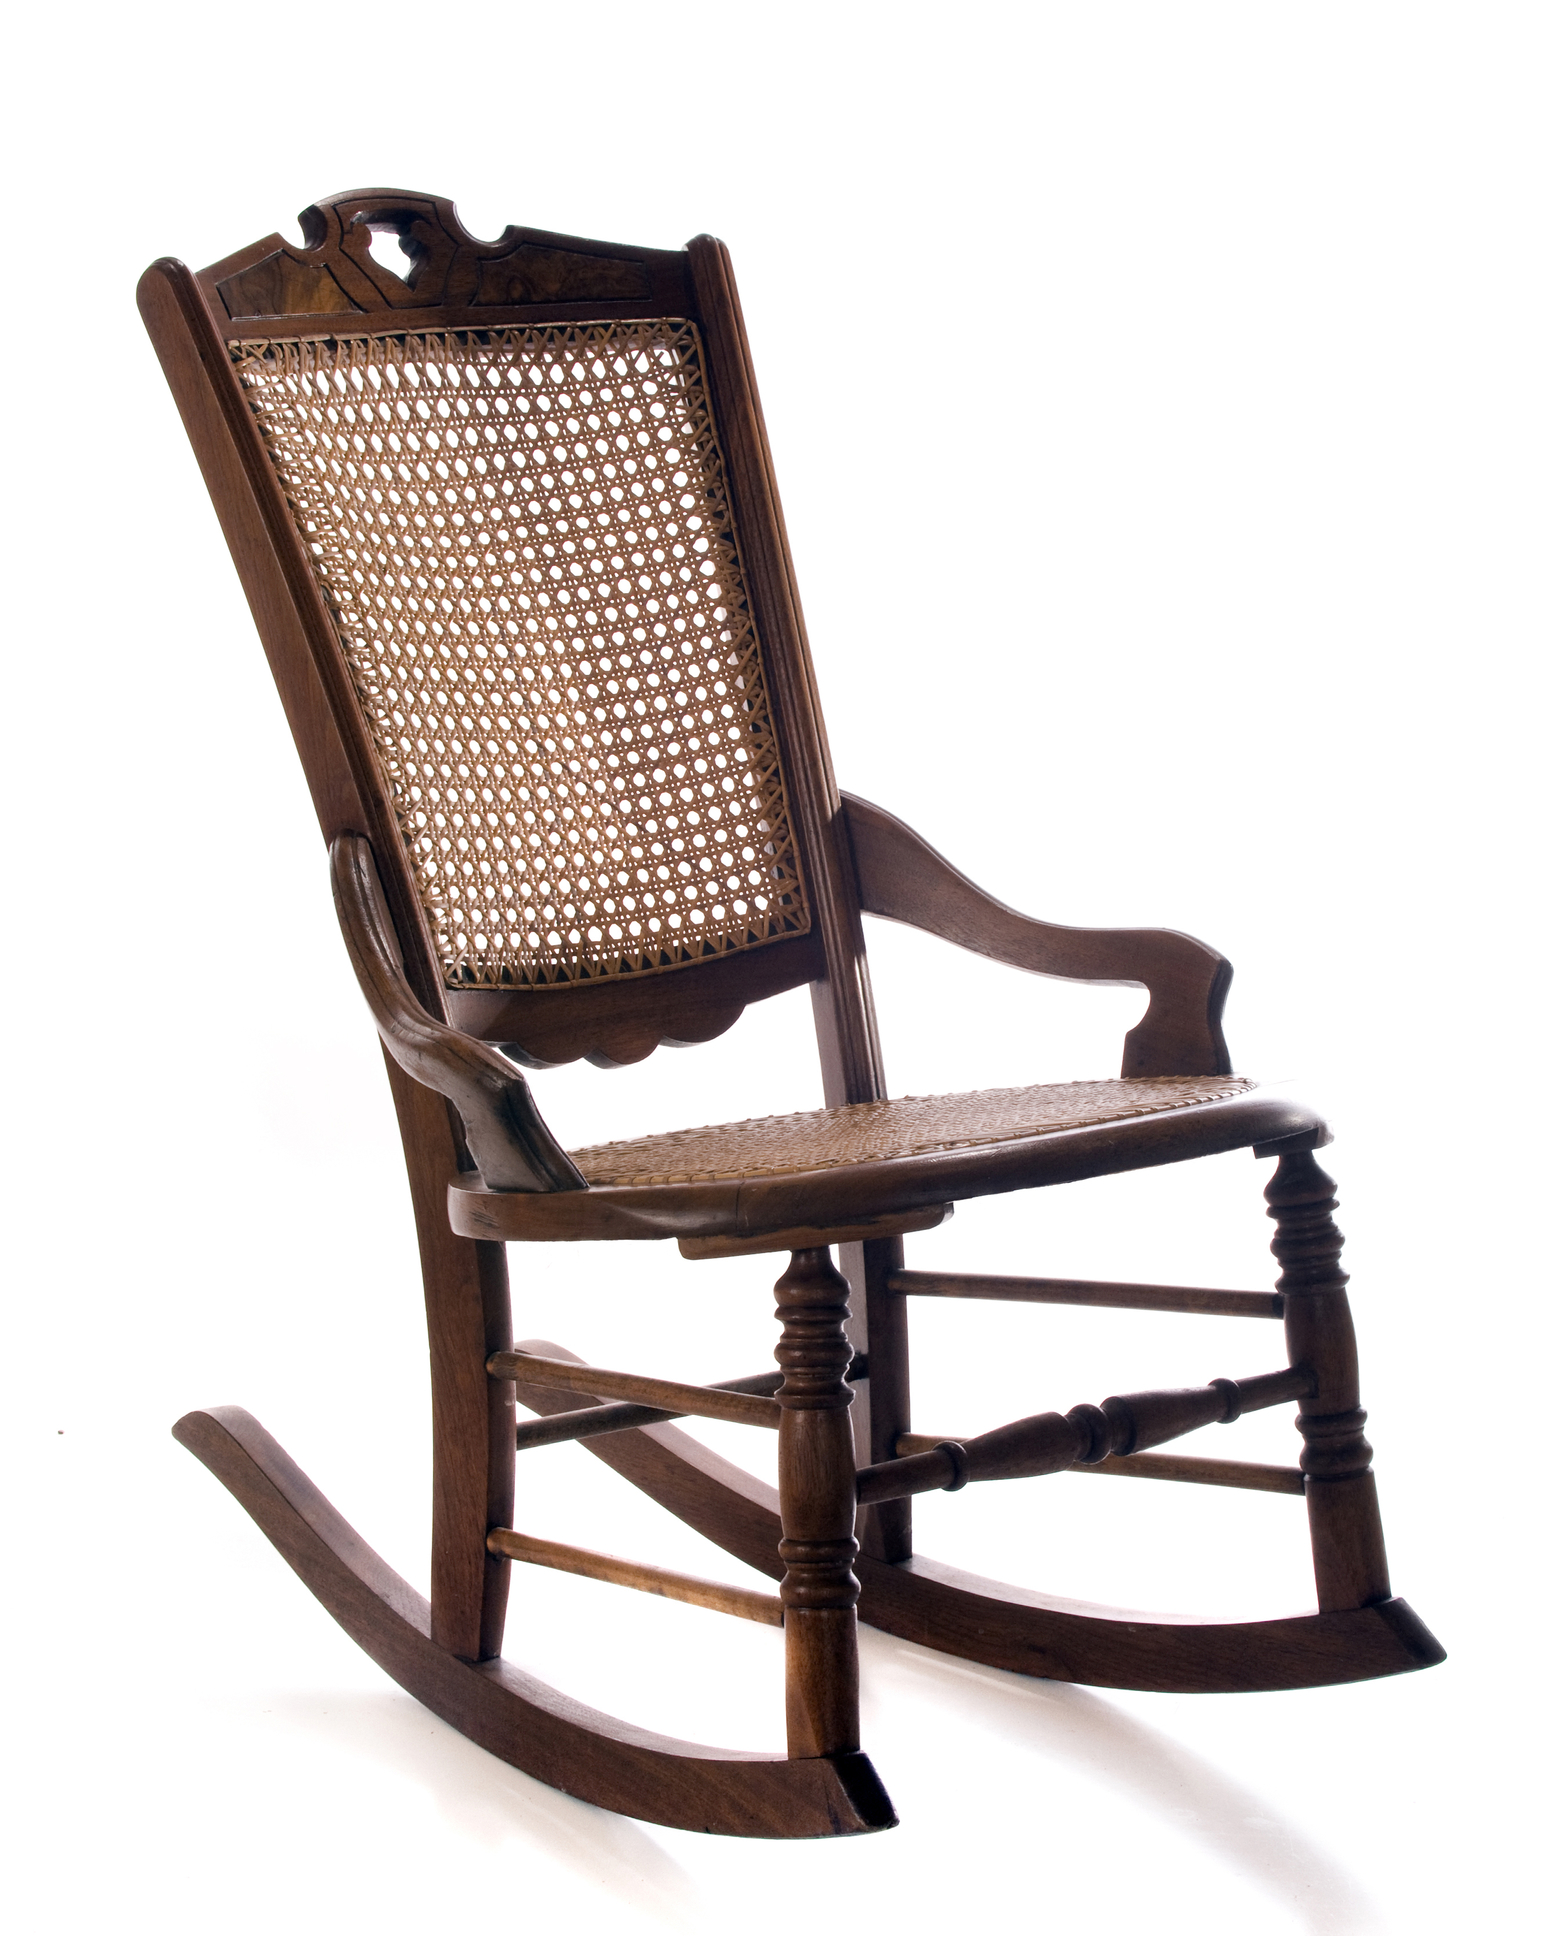 History of cane chair